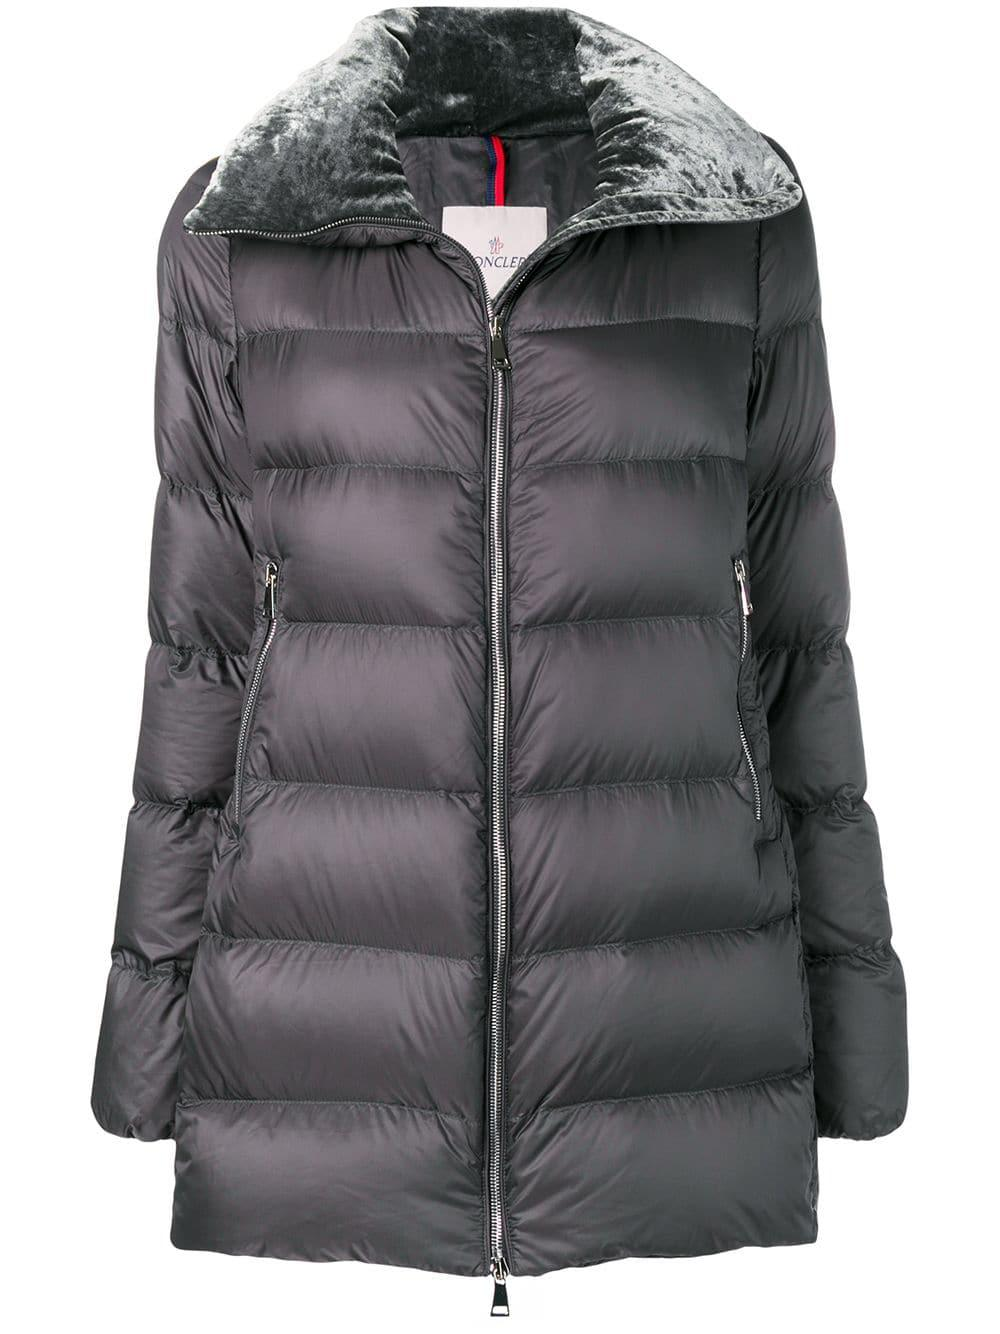 Moncler Torcol翻领羽绒服 In Grey